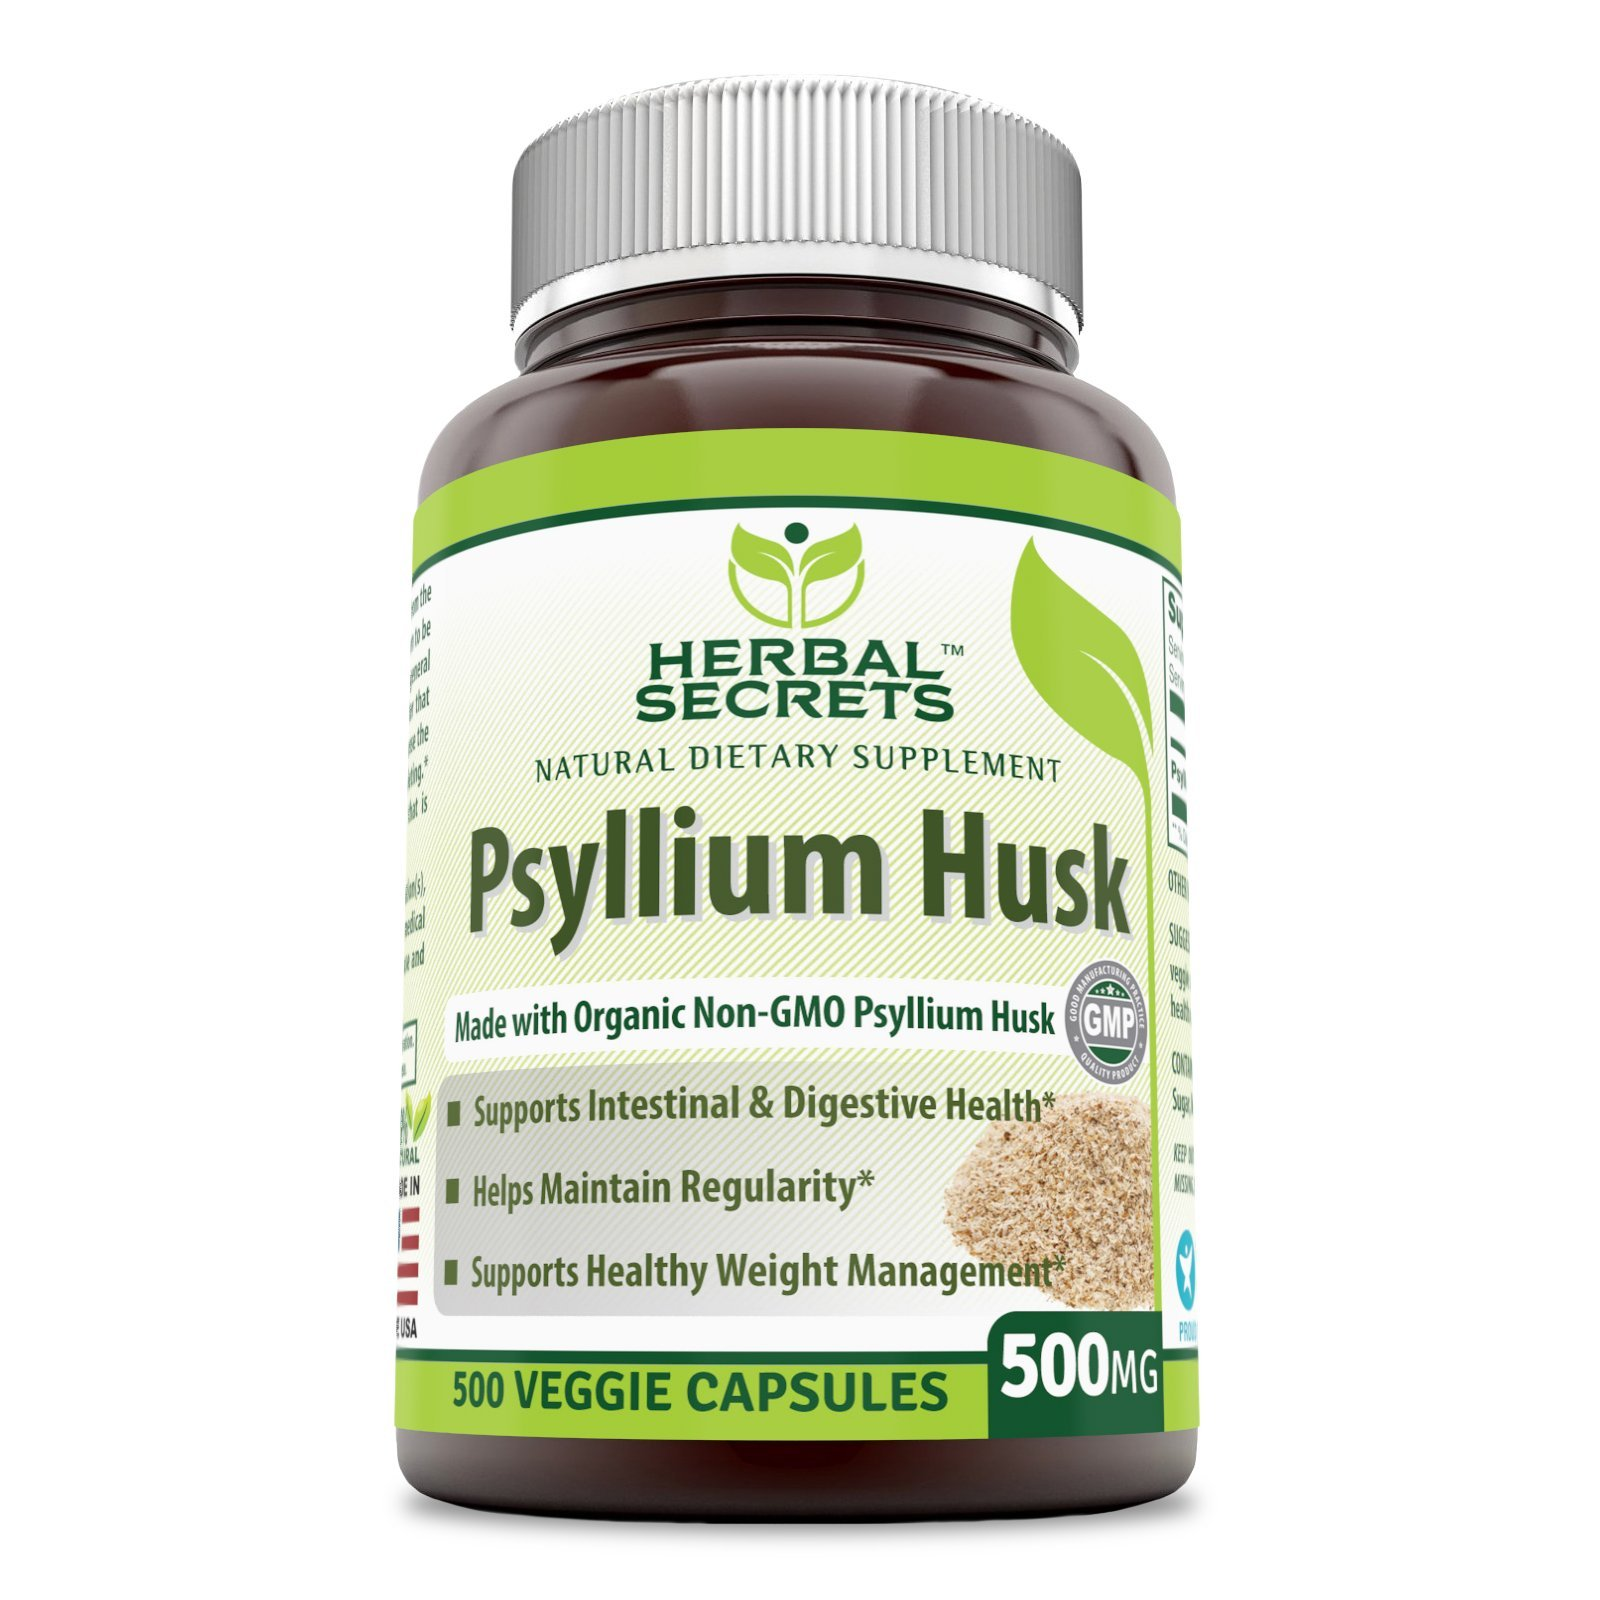 Herbal Secrets Psyllium Husk 500 Mg Veggie Capsules (Non-GMO) - Supports Intestinal & Digestive Health, Weight Management; Helps Maintain Regularity* (500 Count) by Herbal Secrets